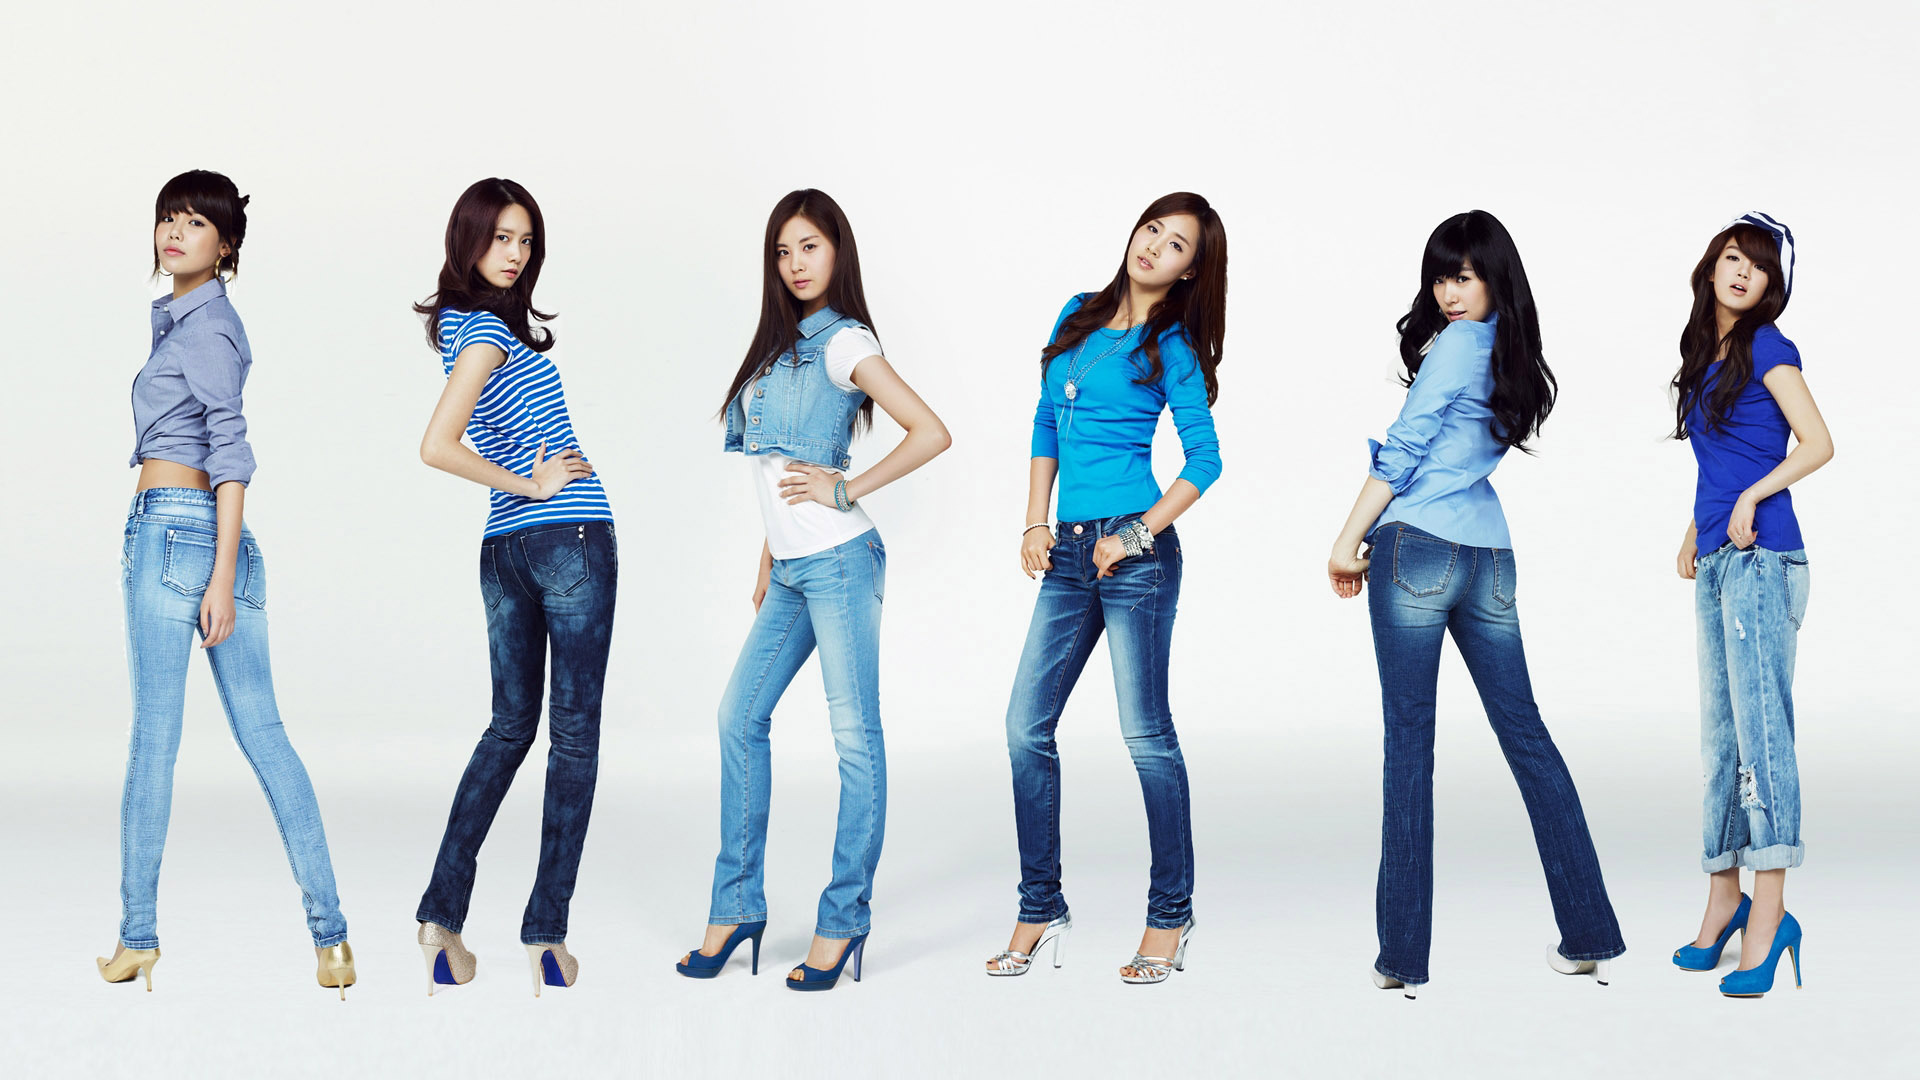 Invincible Youth images afterschool HD wallpaper and 1920x1080